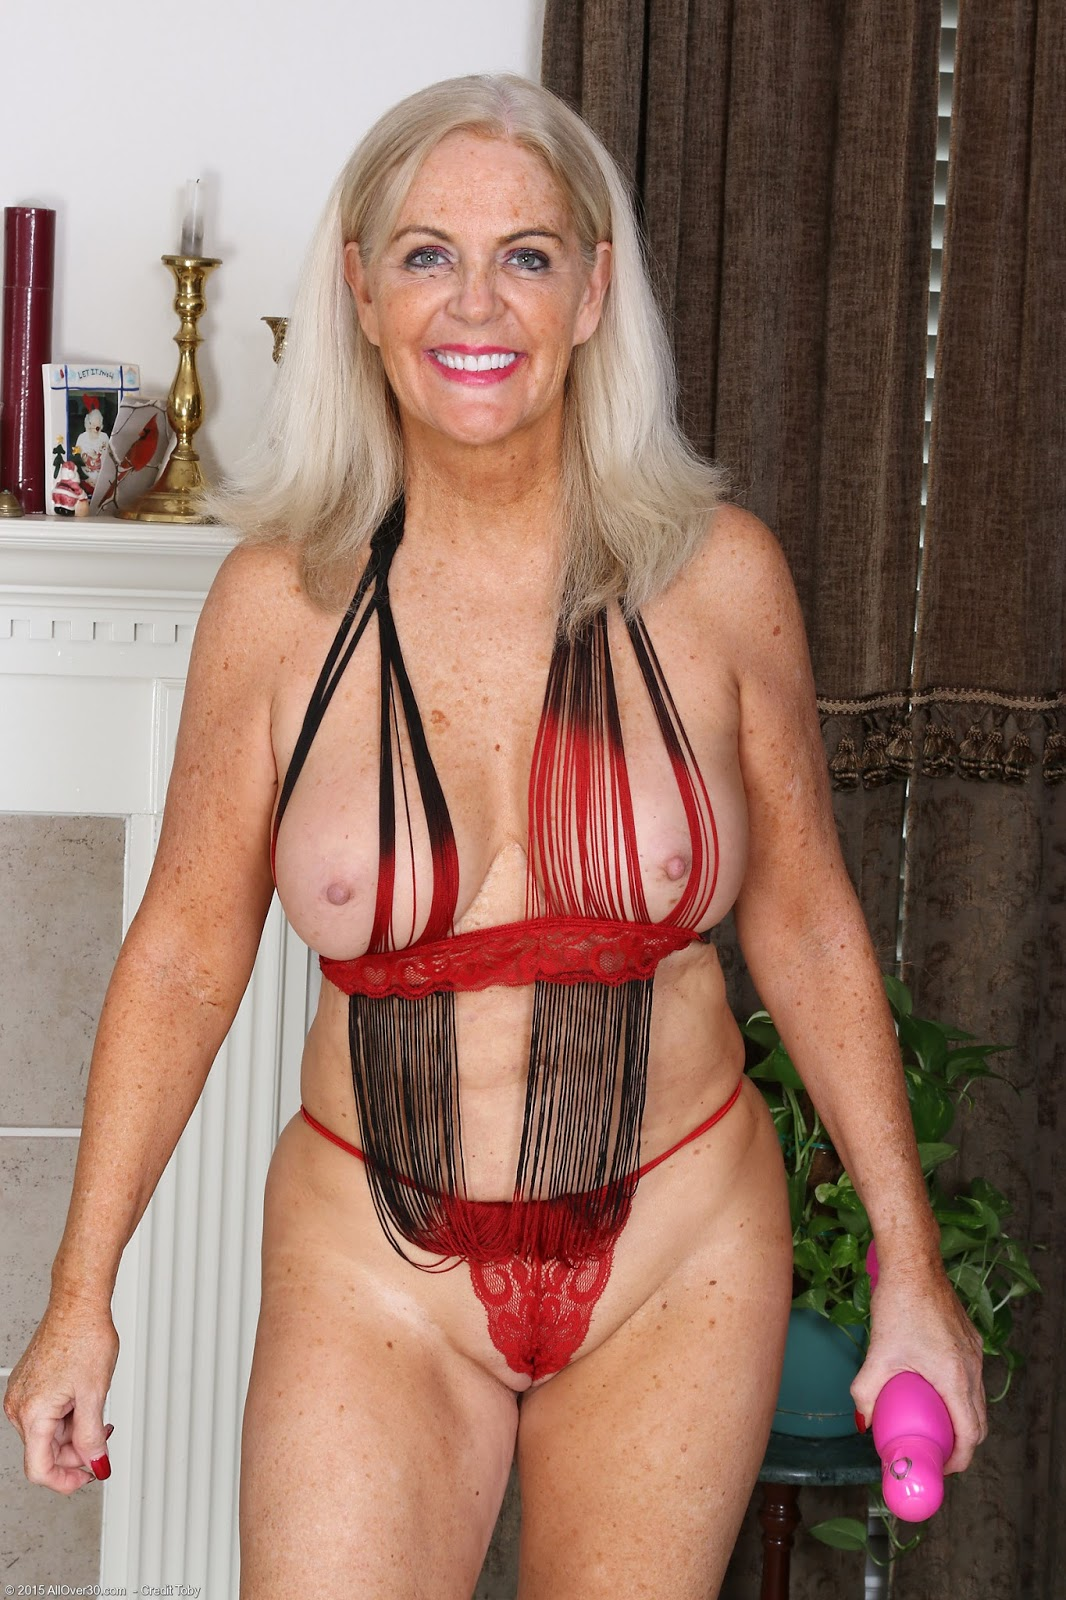 66 year old sub linda from slut to whore - 1 2